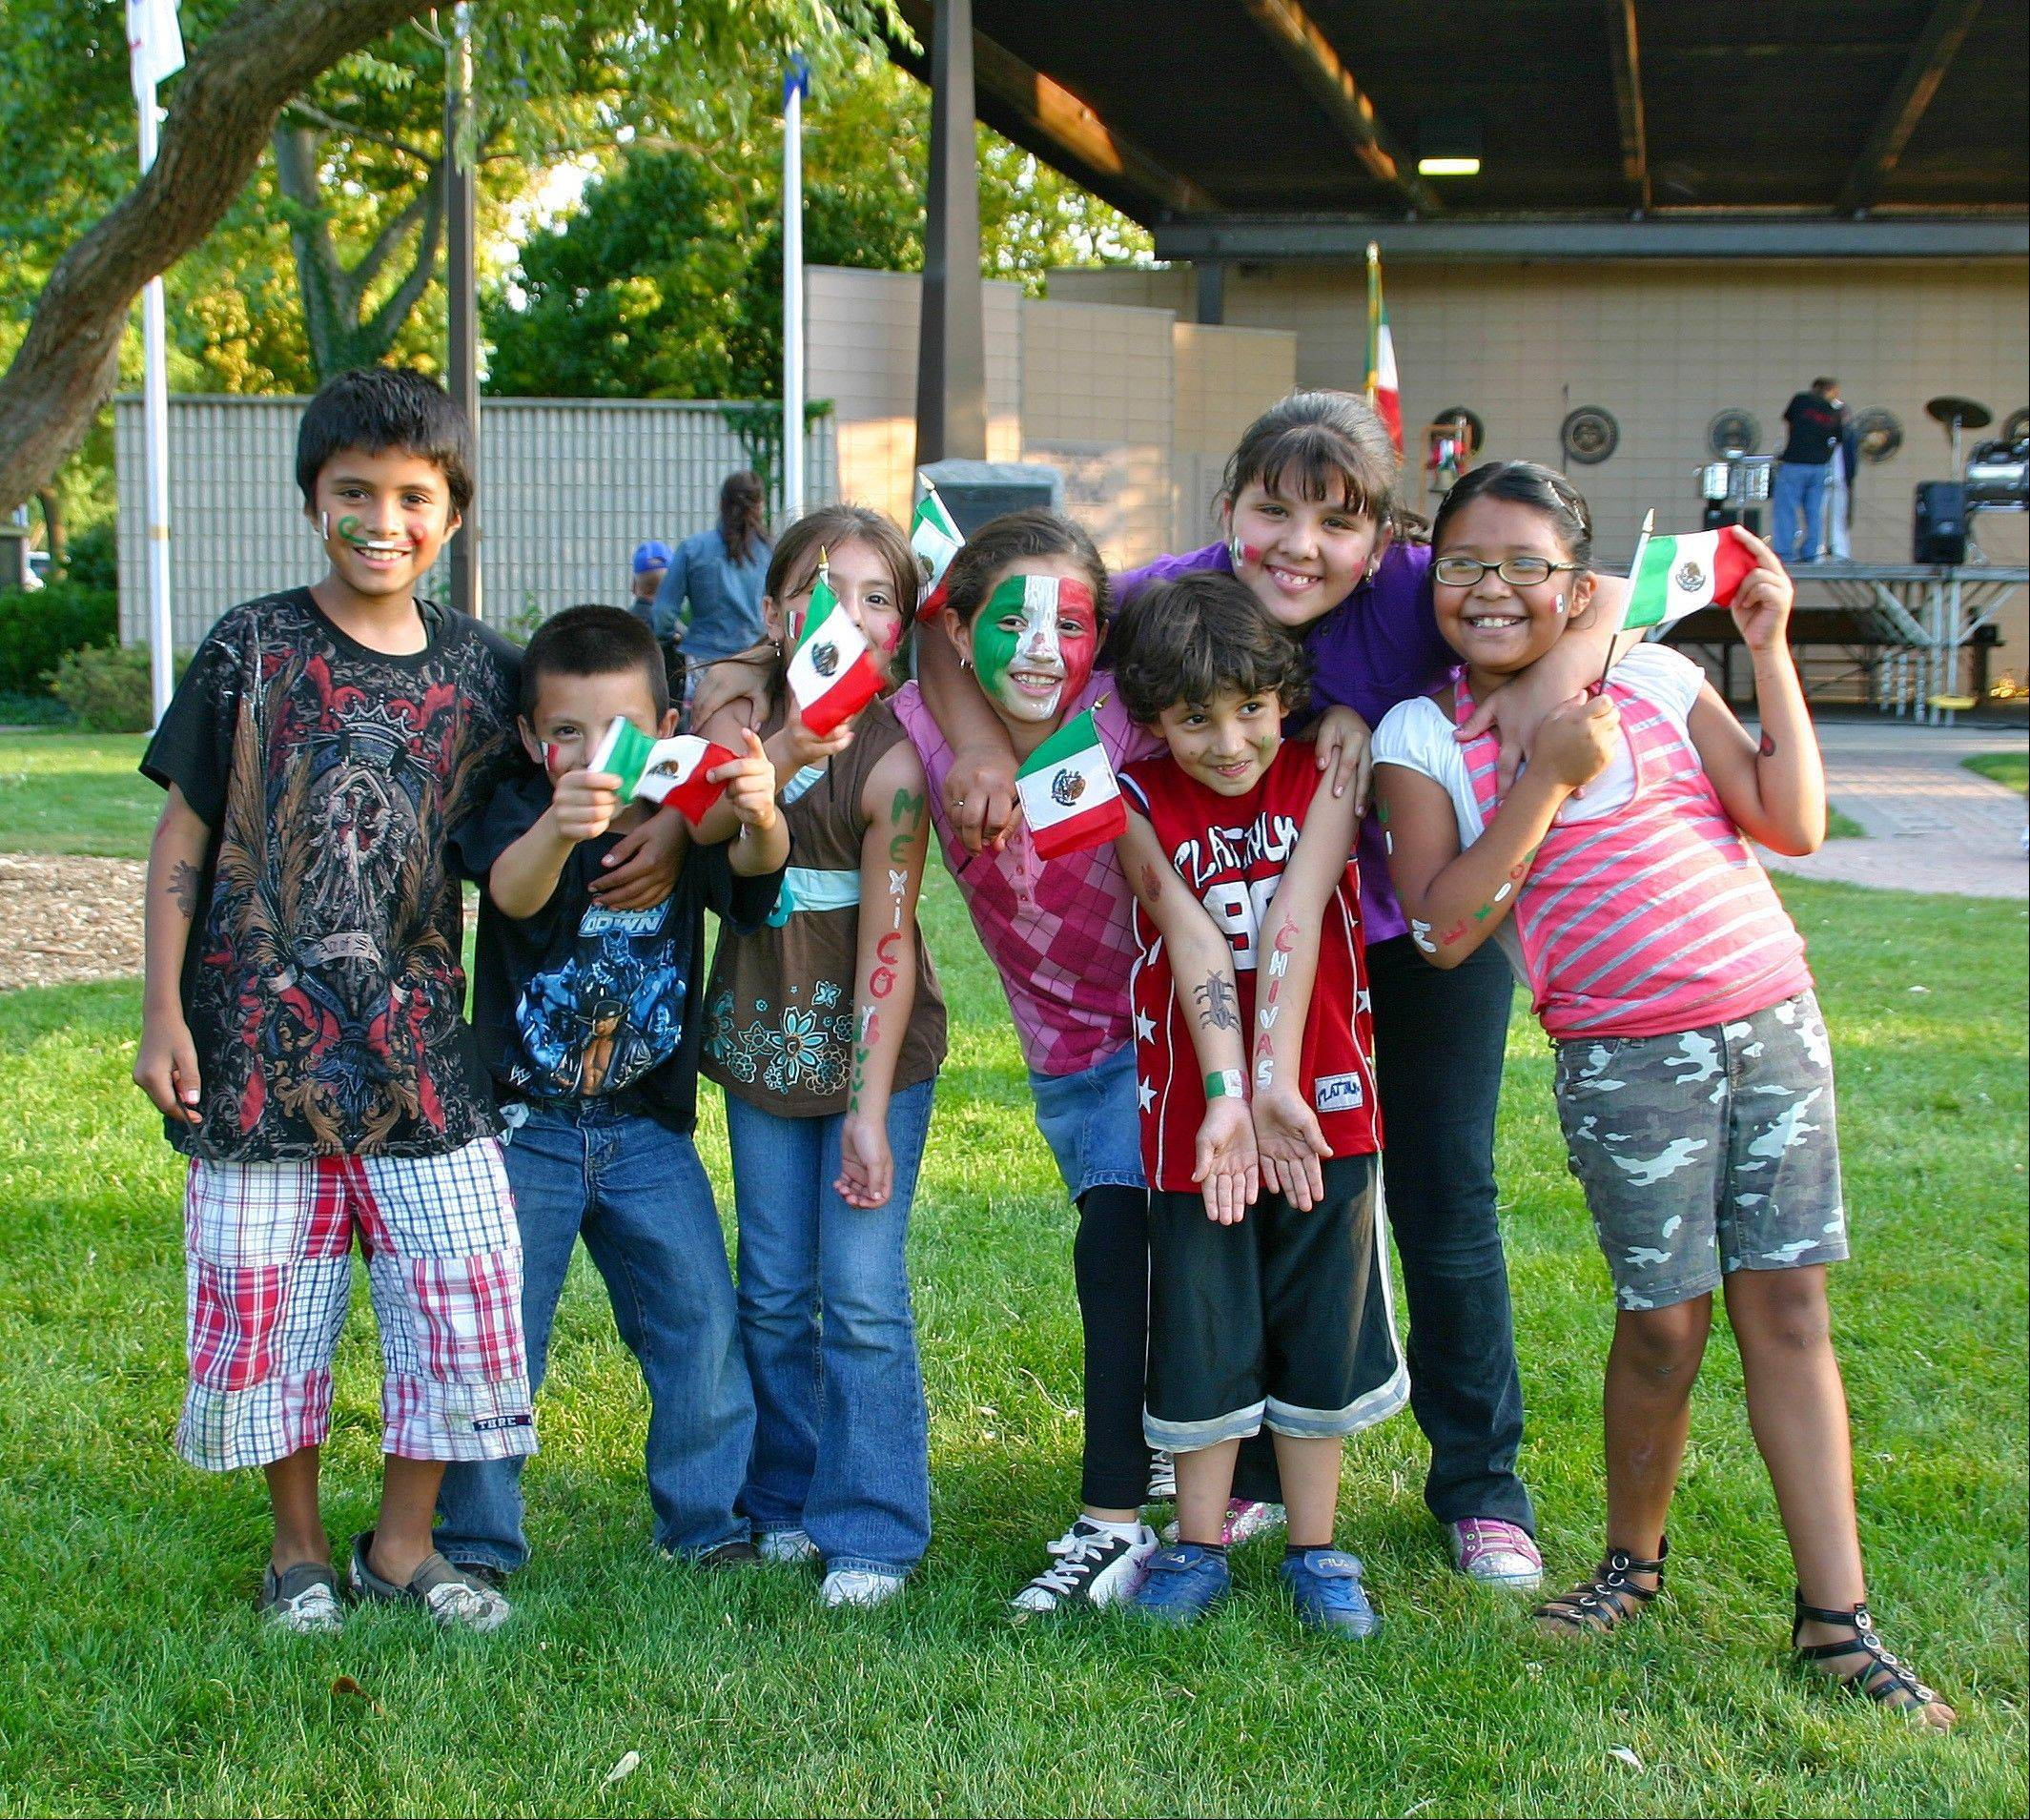 Kids show their spirit at last year's Festival!